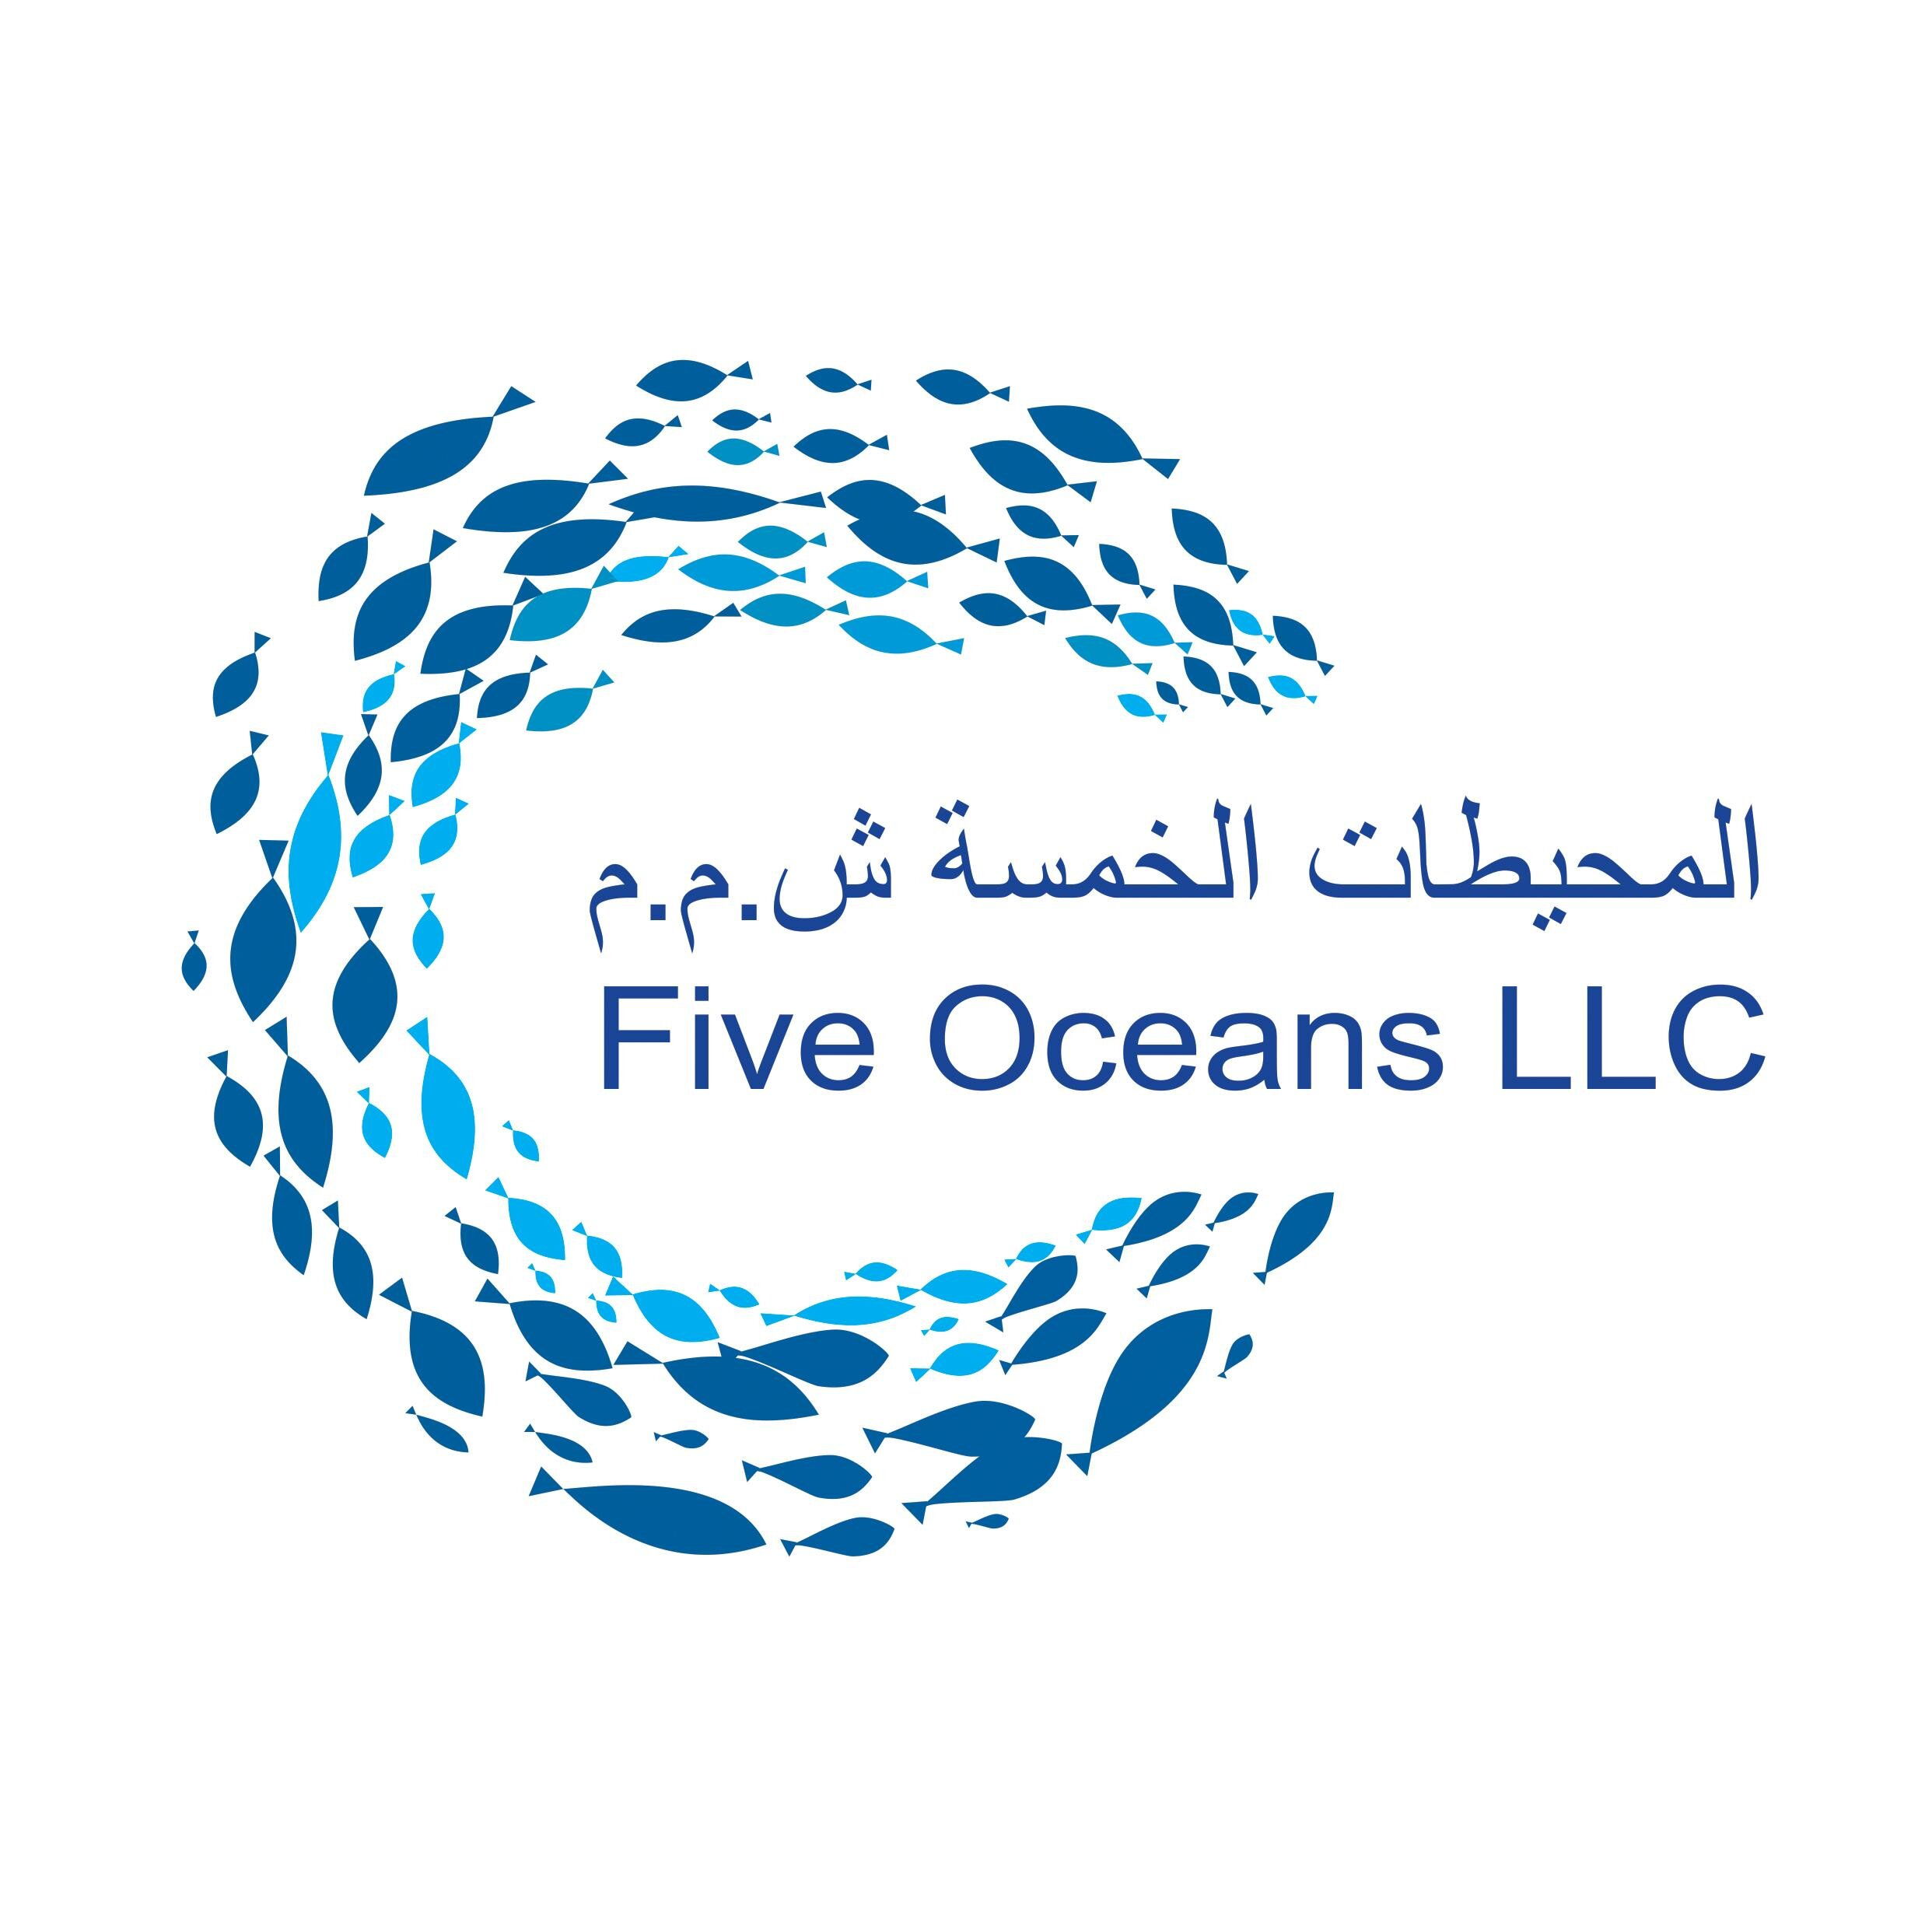 Five Oceans Co LLC On Twitter Cant Say How Happy We Are To Get - Five oceans